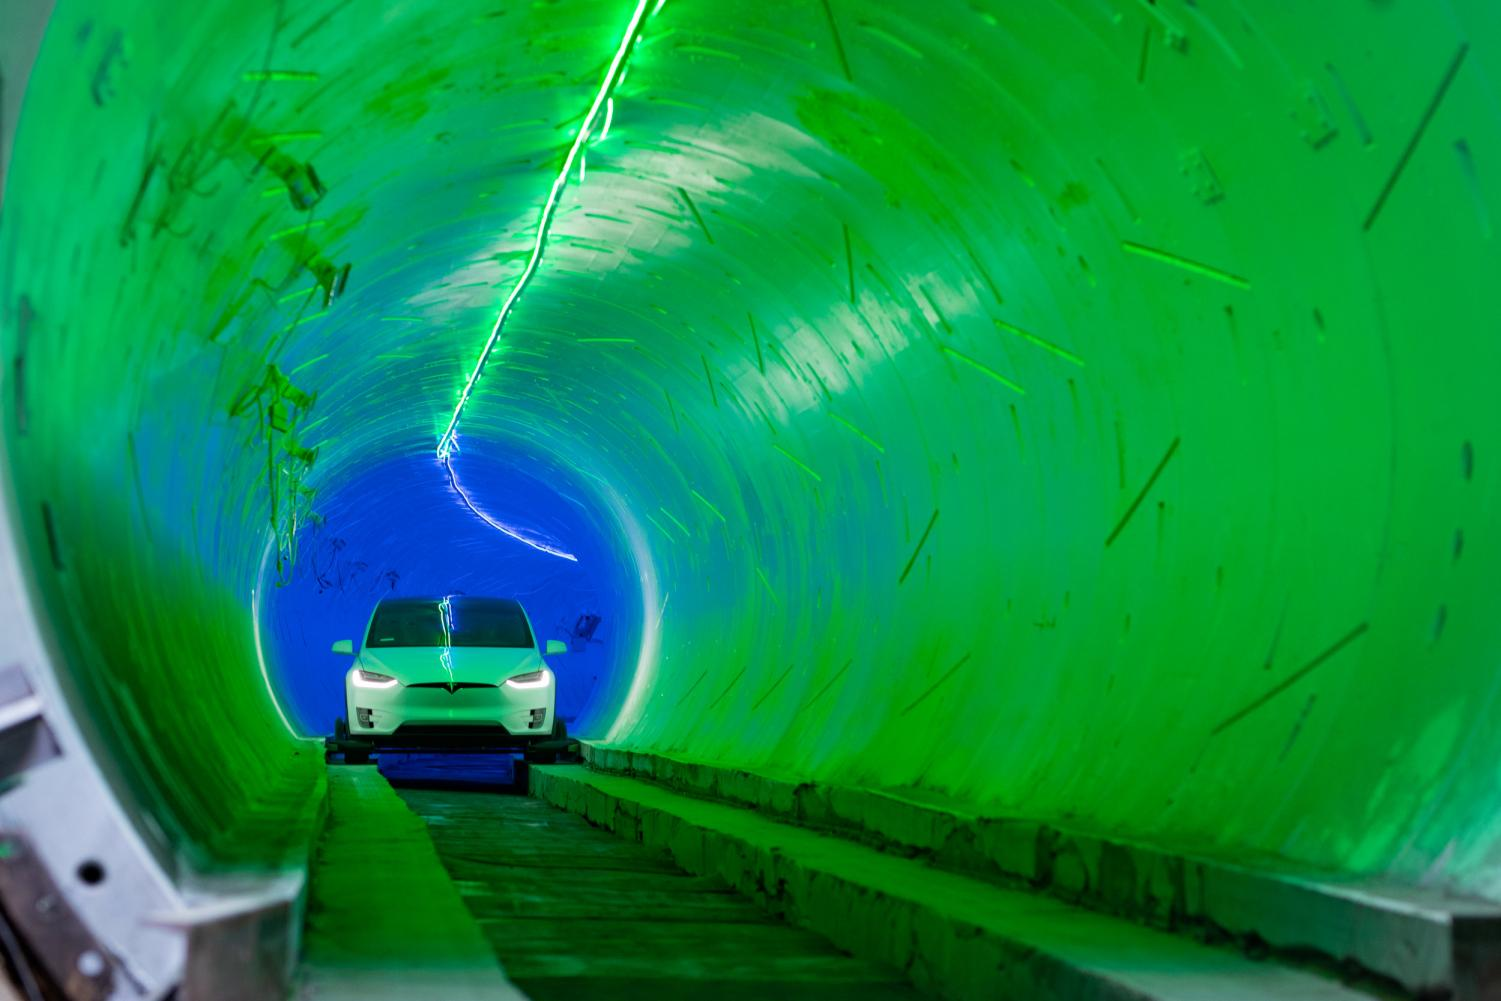 Image from inside the Hawthorne test tunnel.